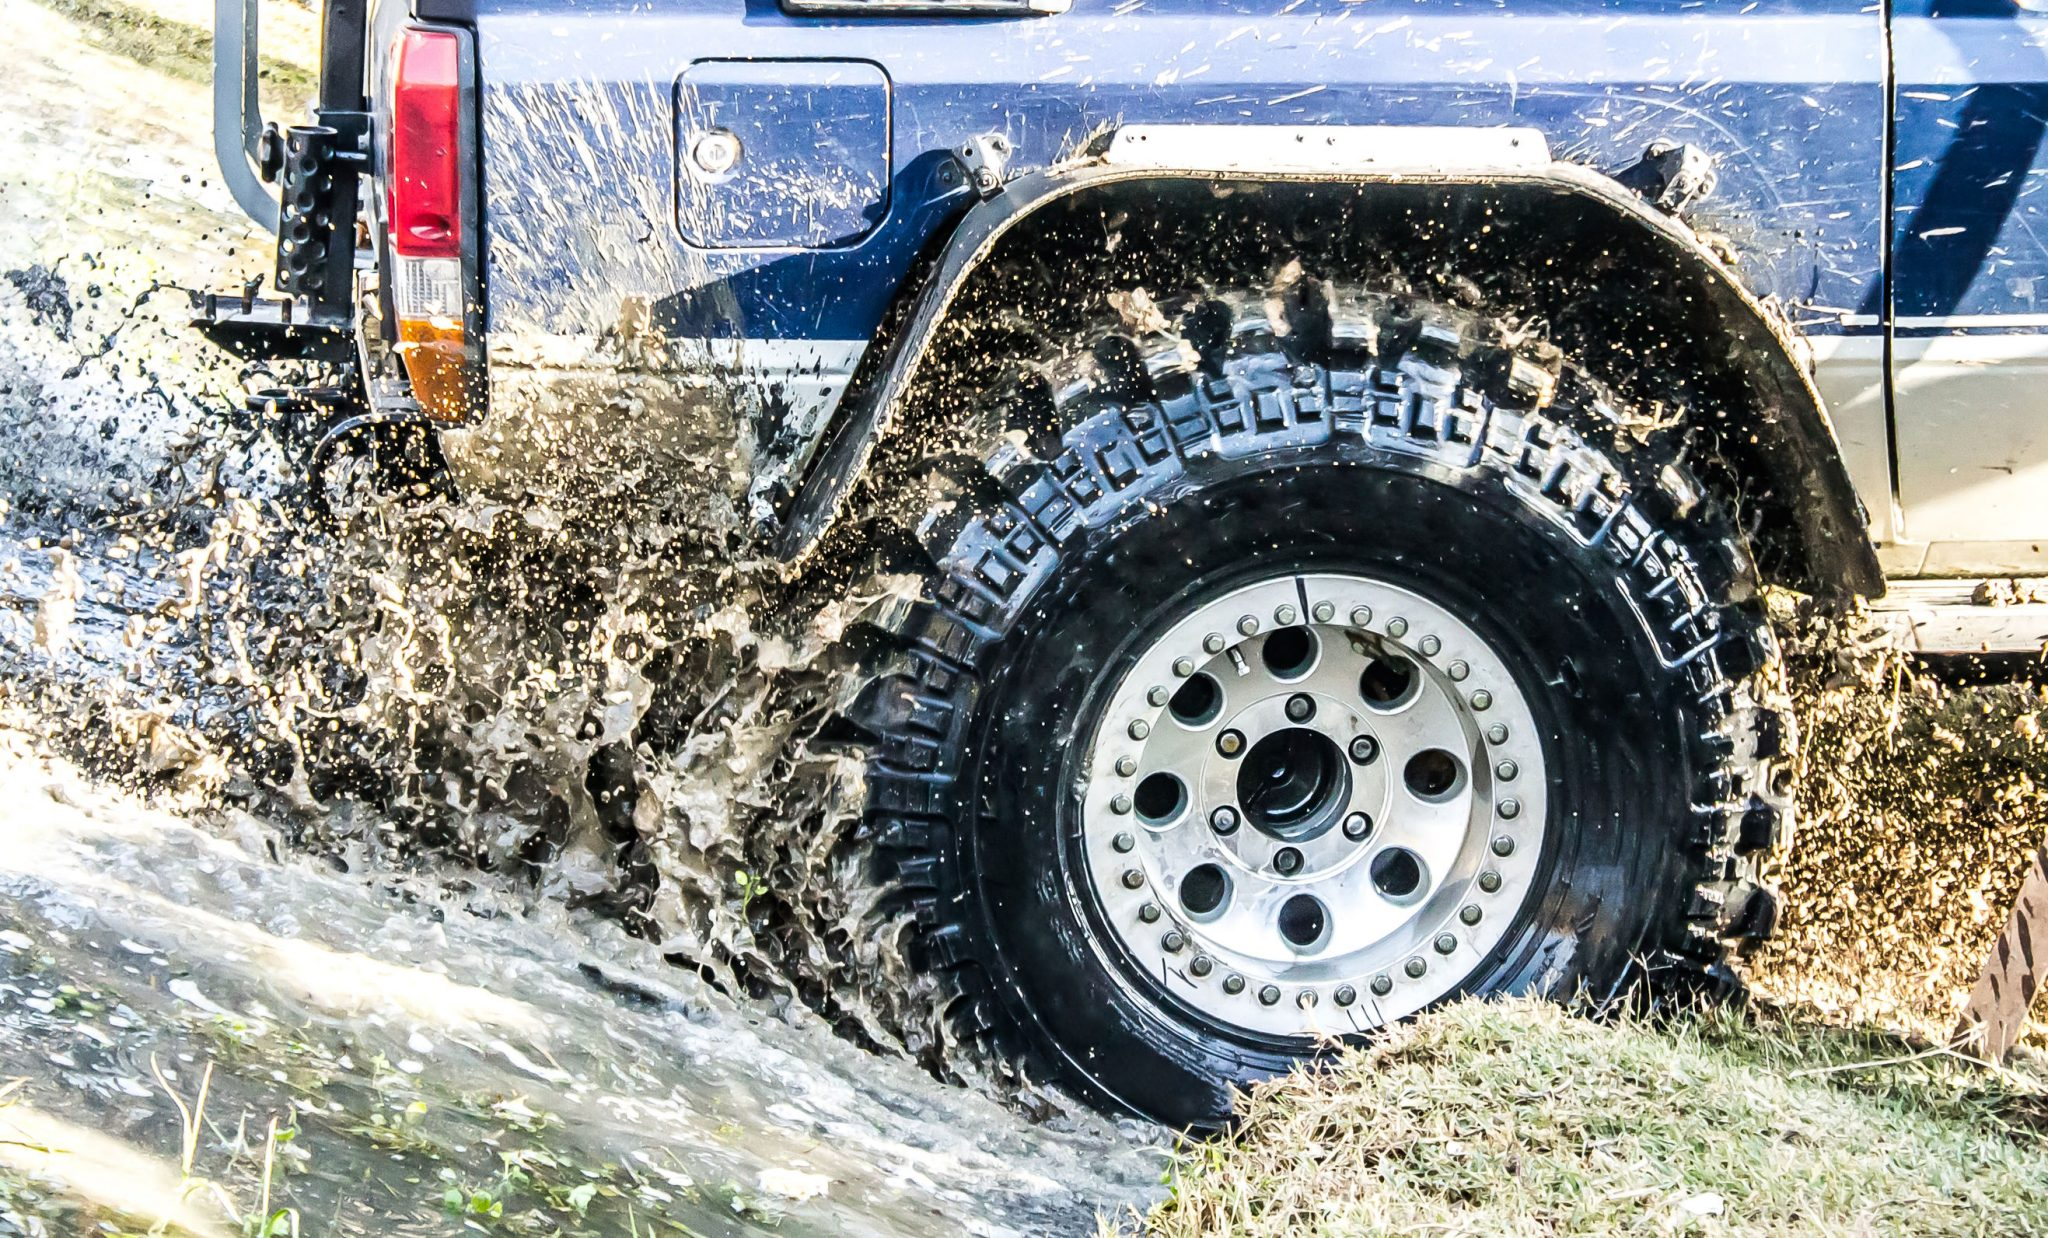 How often should you wash your car? Most car experts suggest washing your car every two weeks.